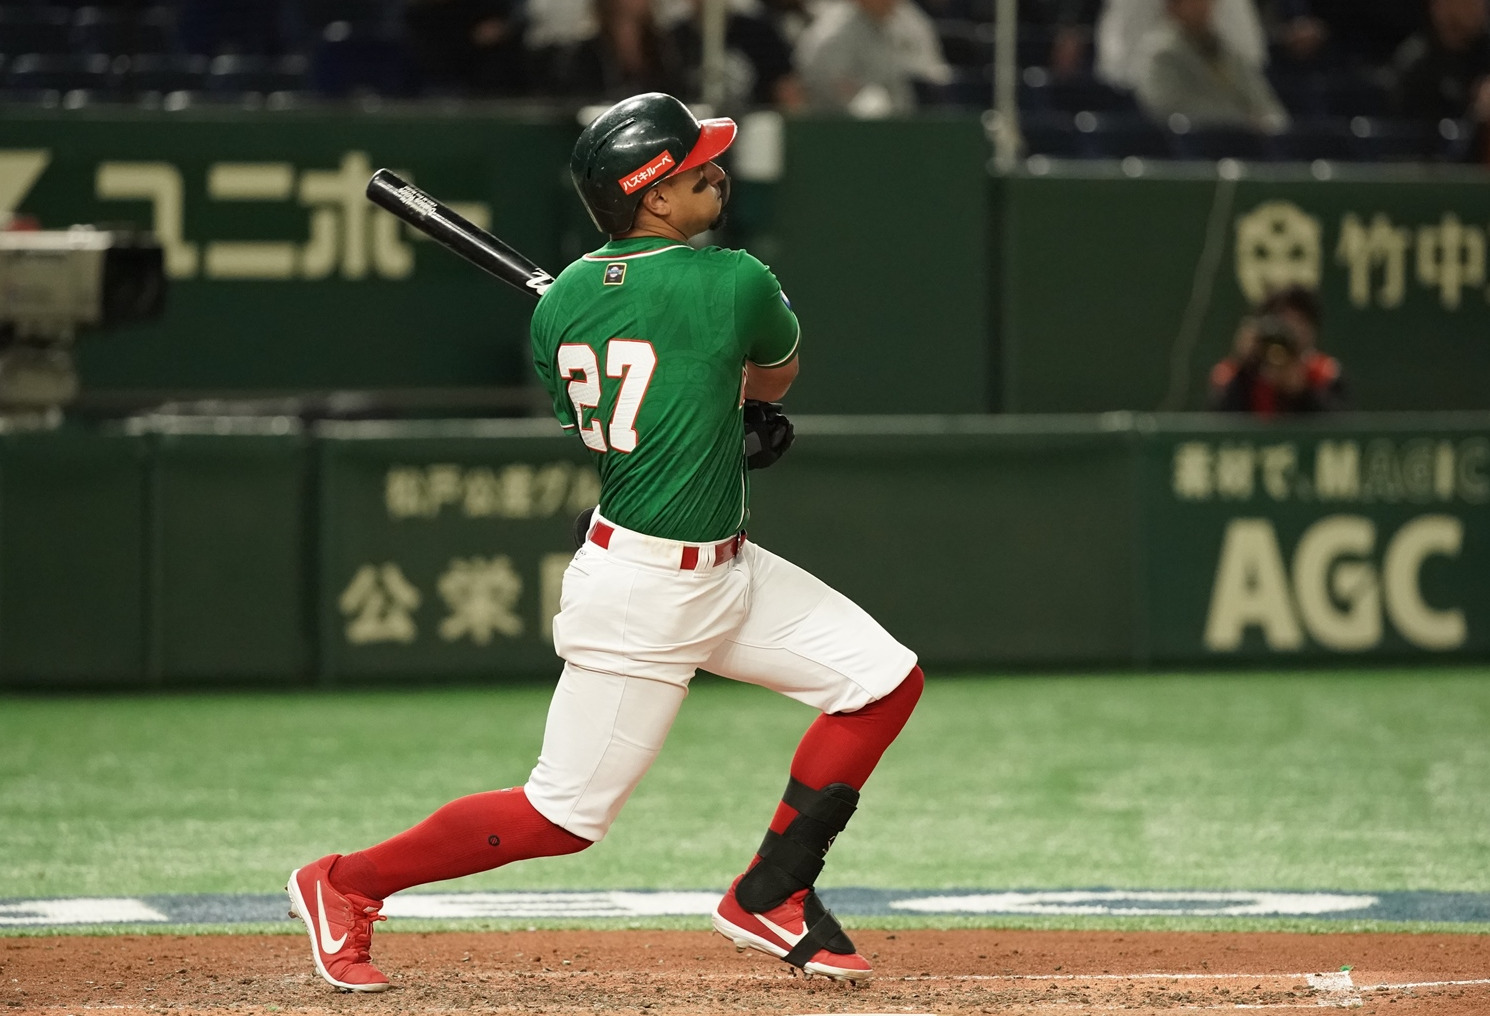 Jonathan Jones homered to give Mexico the lead